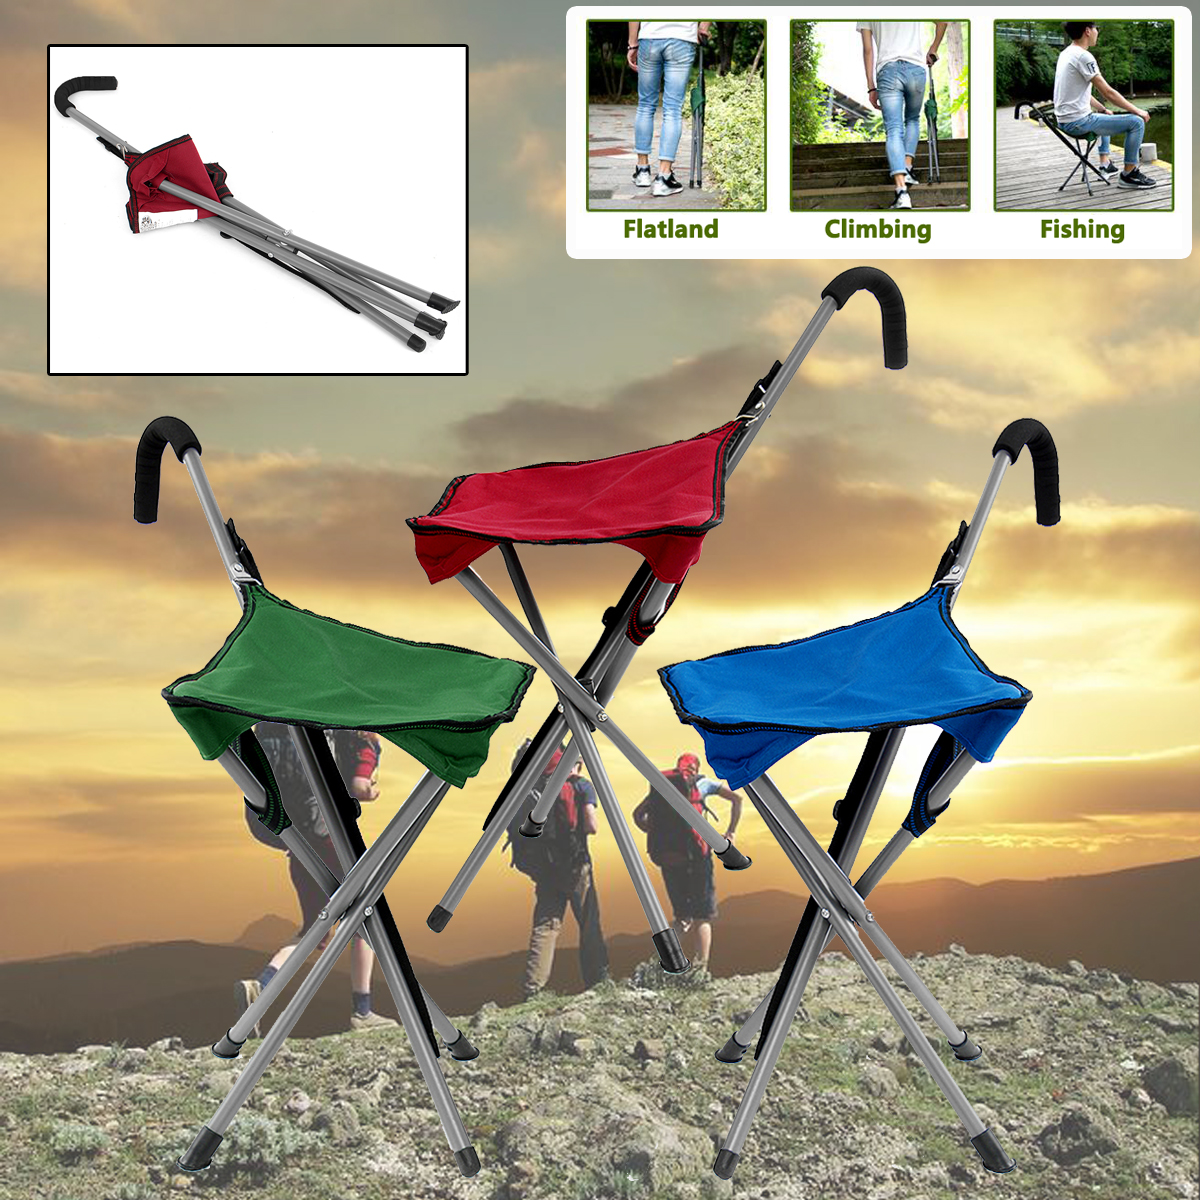 Folding Cane Chair Portable Walking Stick with Stool Easy Fold Seat Rest Tripod Fishing Hiking Camping Stool Chair Outdoor Tool bamboo bamboo portable folding stool have small bench wooden fishing outdoor folding stool campstool train